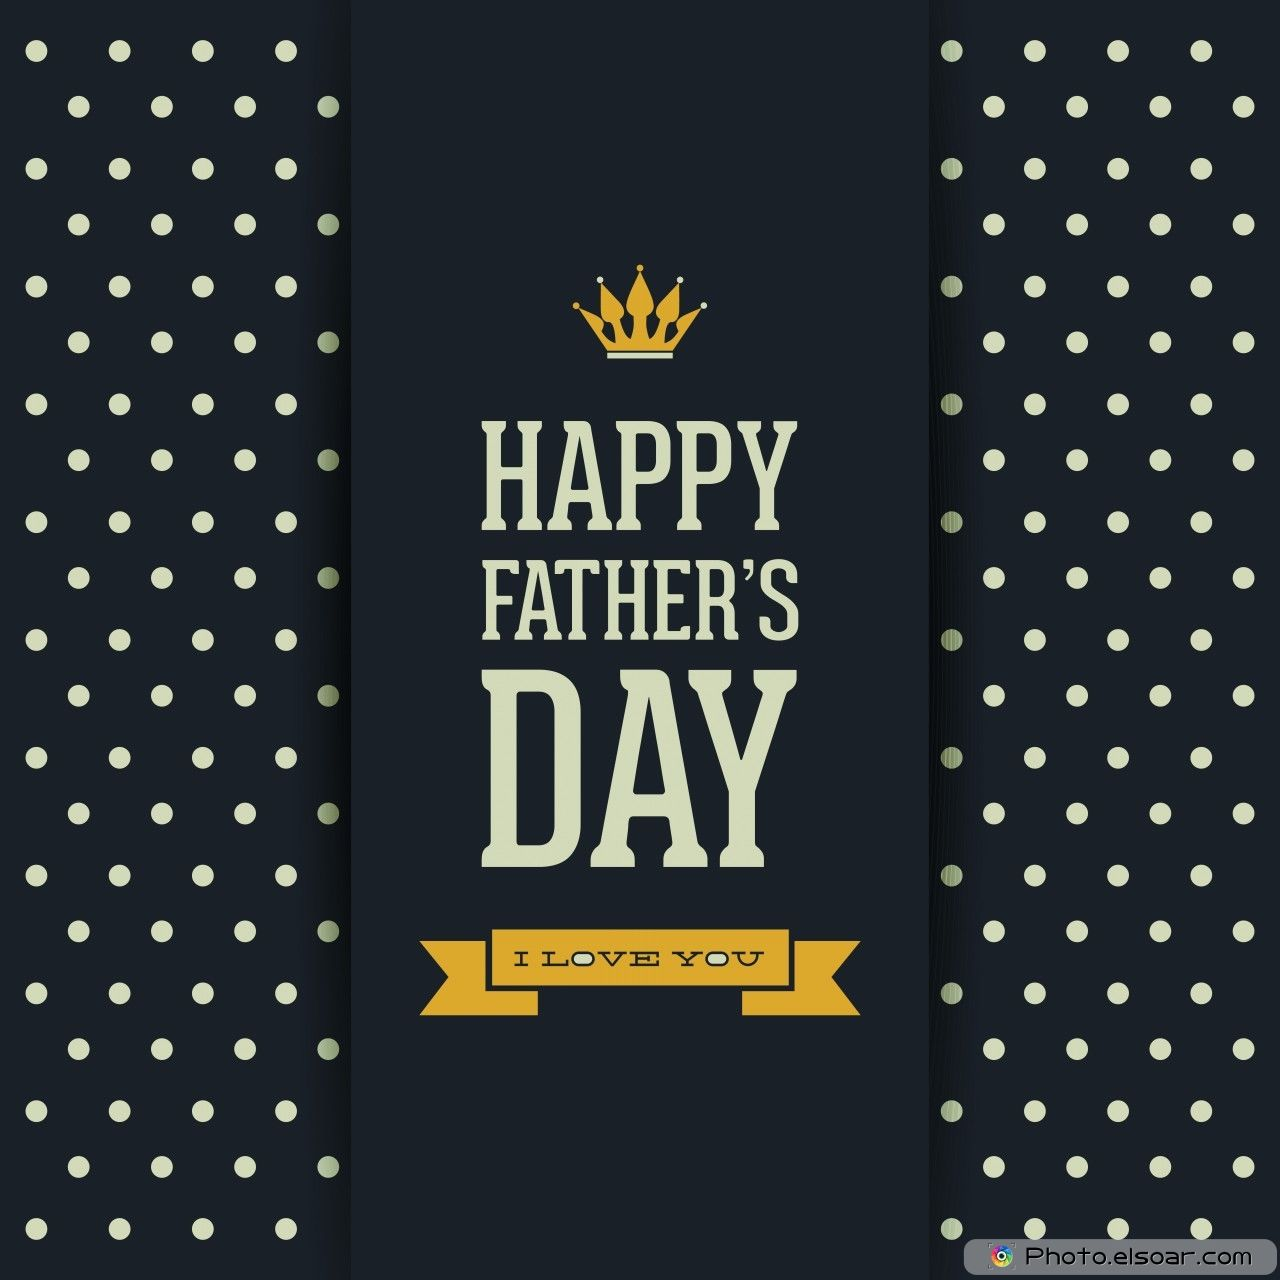 I Love You Quotes: Happy Fathers Day, I Love You Pictures, Photos, And Images